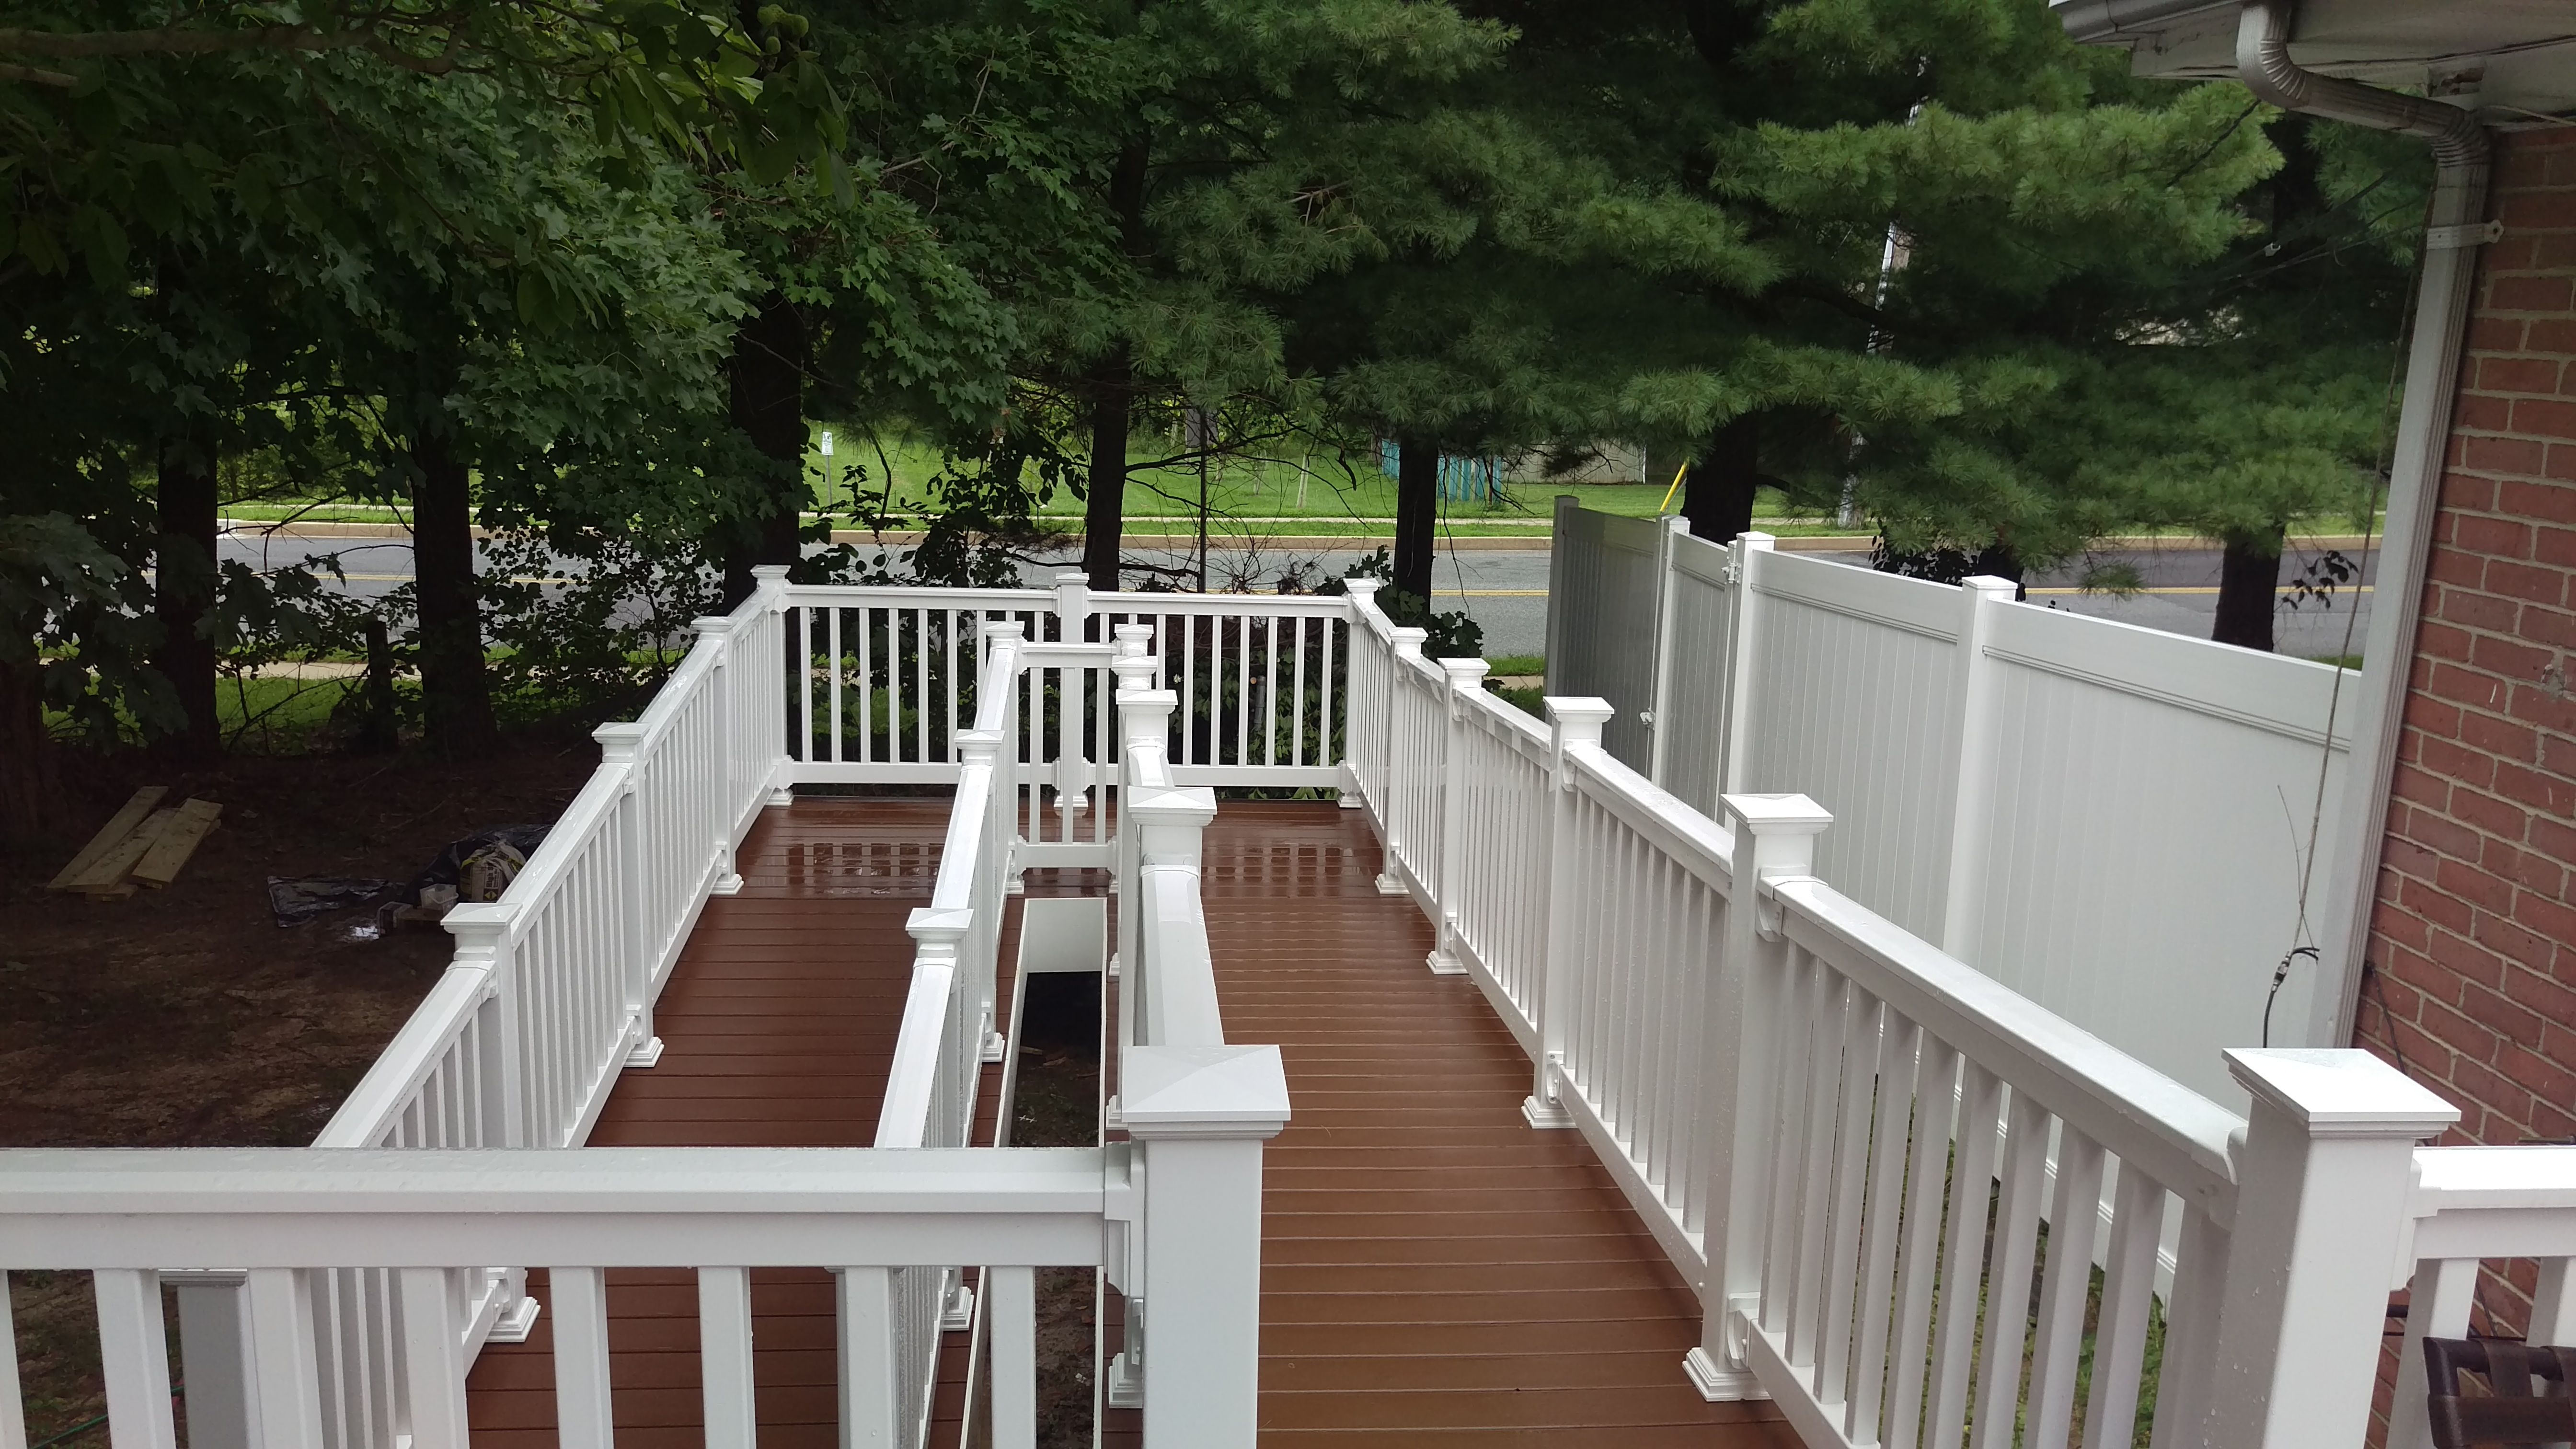 This Ramp And Railing Are Done Using Discounted Vinyl Decking And Vinyl Railing From Great Railing Starting At Only 11 50 Per Foo Deck Photos Deck Dream Deck